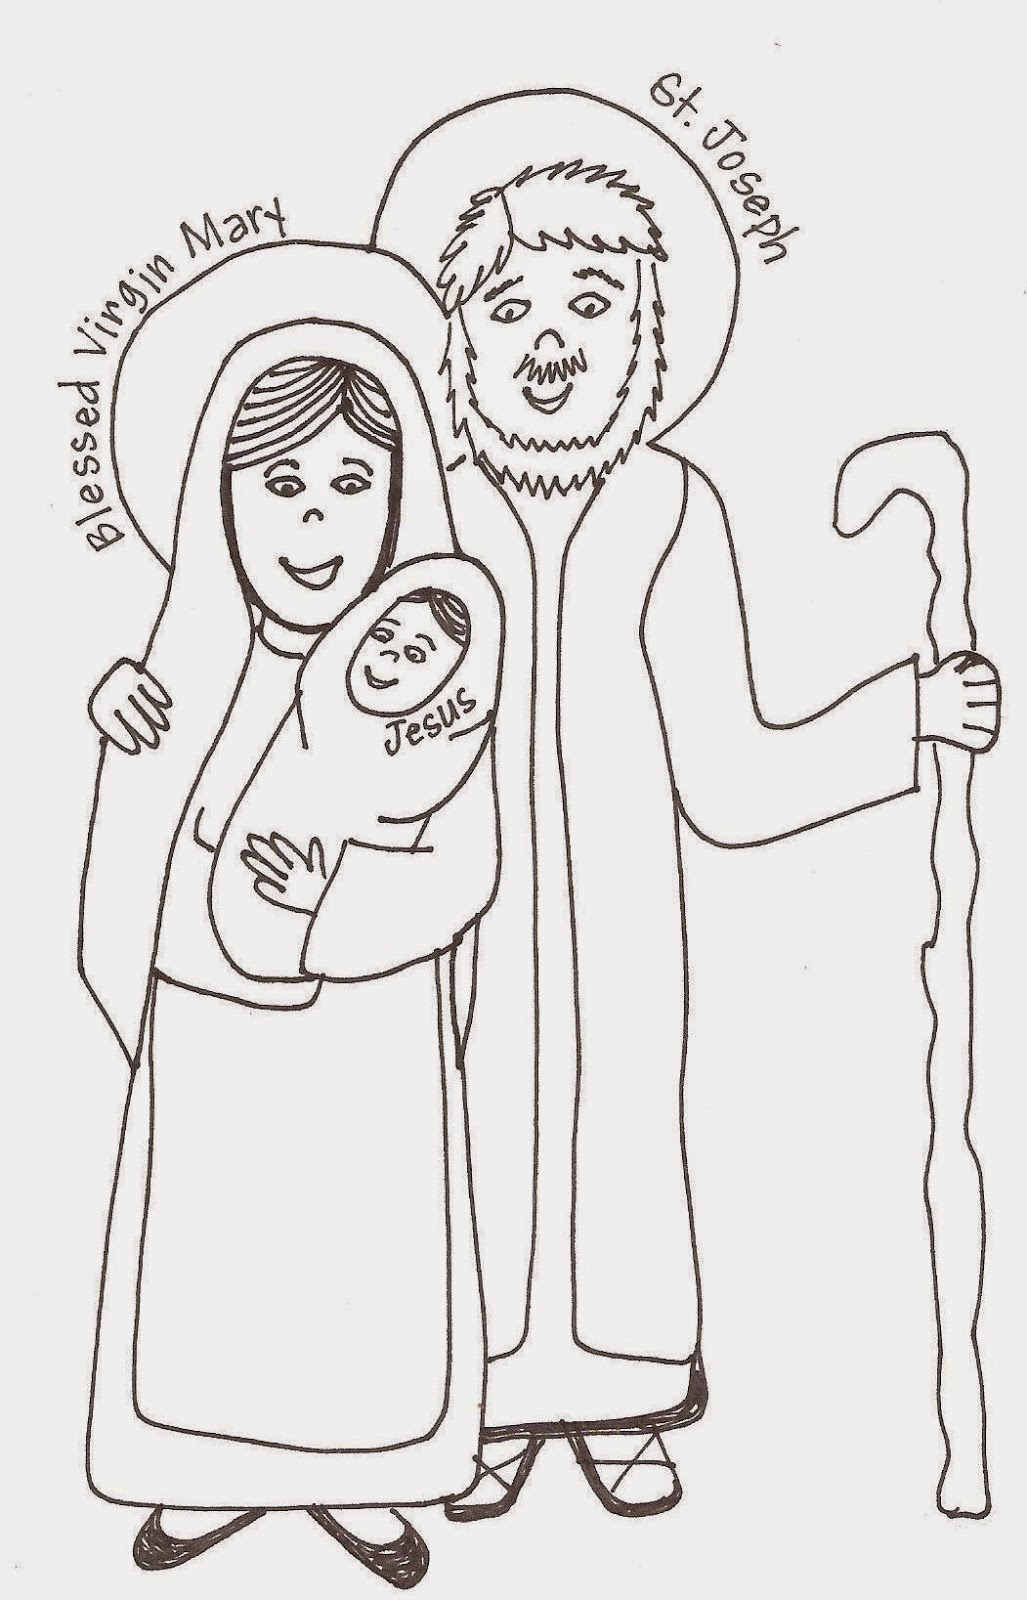 http://looktohimandberadiant.blogspot.com/2013/05/saints-coloring-pages-and-murals-holy.html